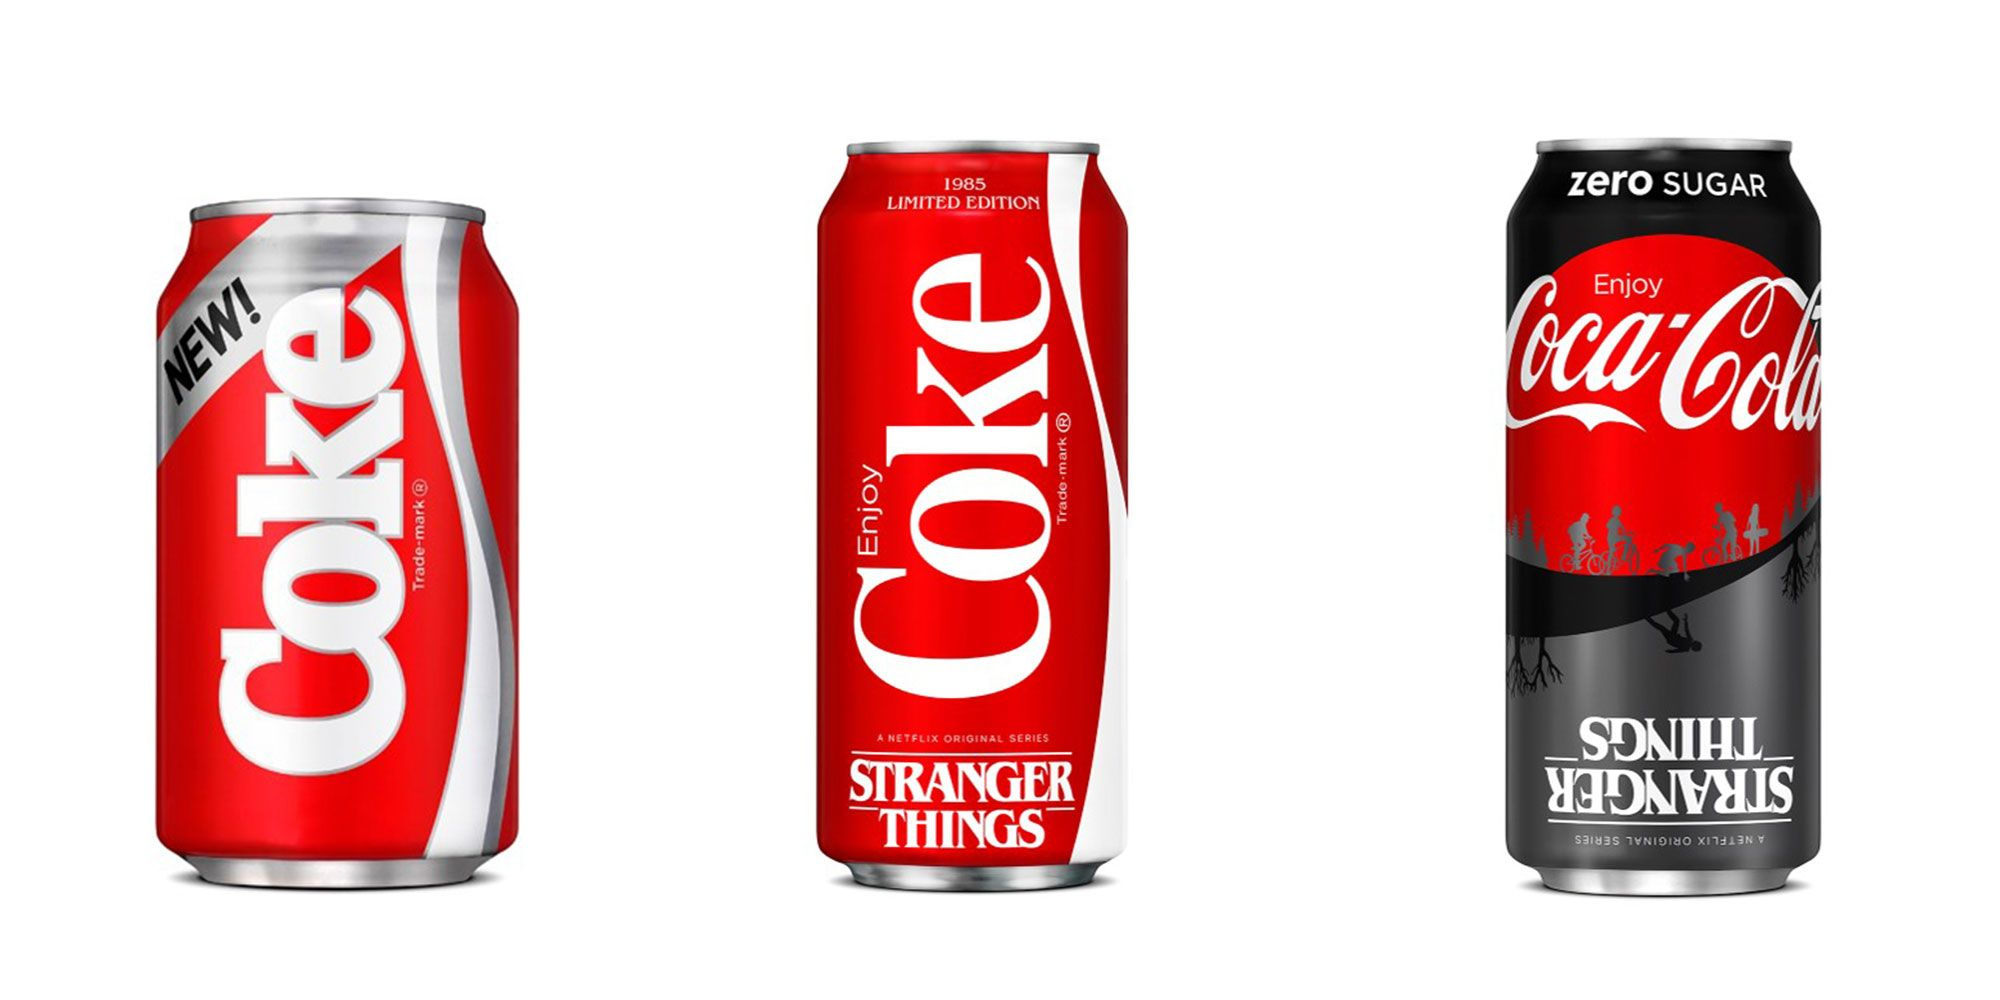 Limited Edition Stranger Things New Coke Coca Cola Rare! NEW